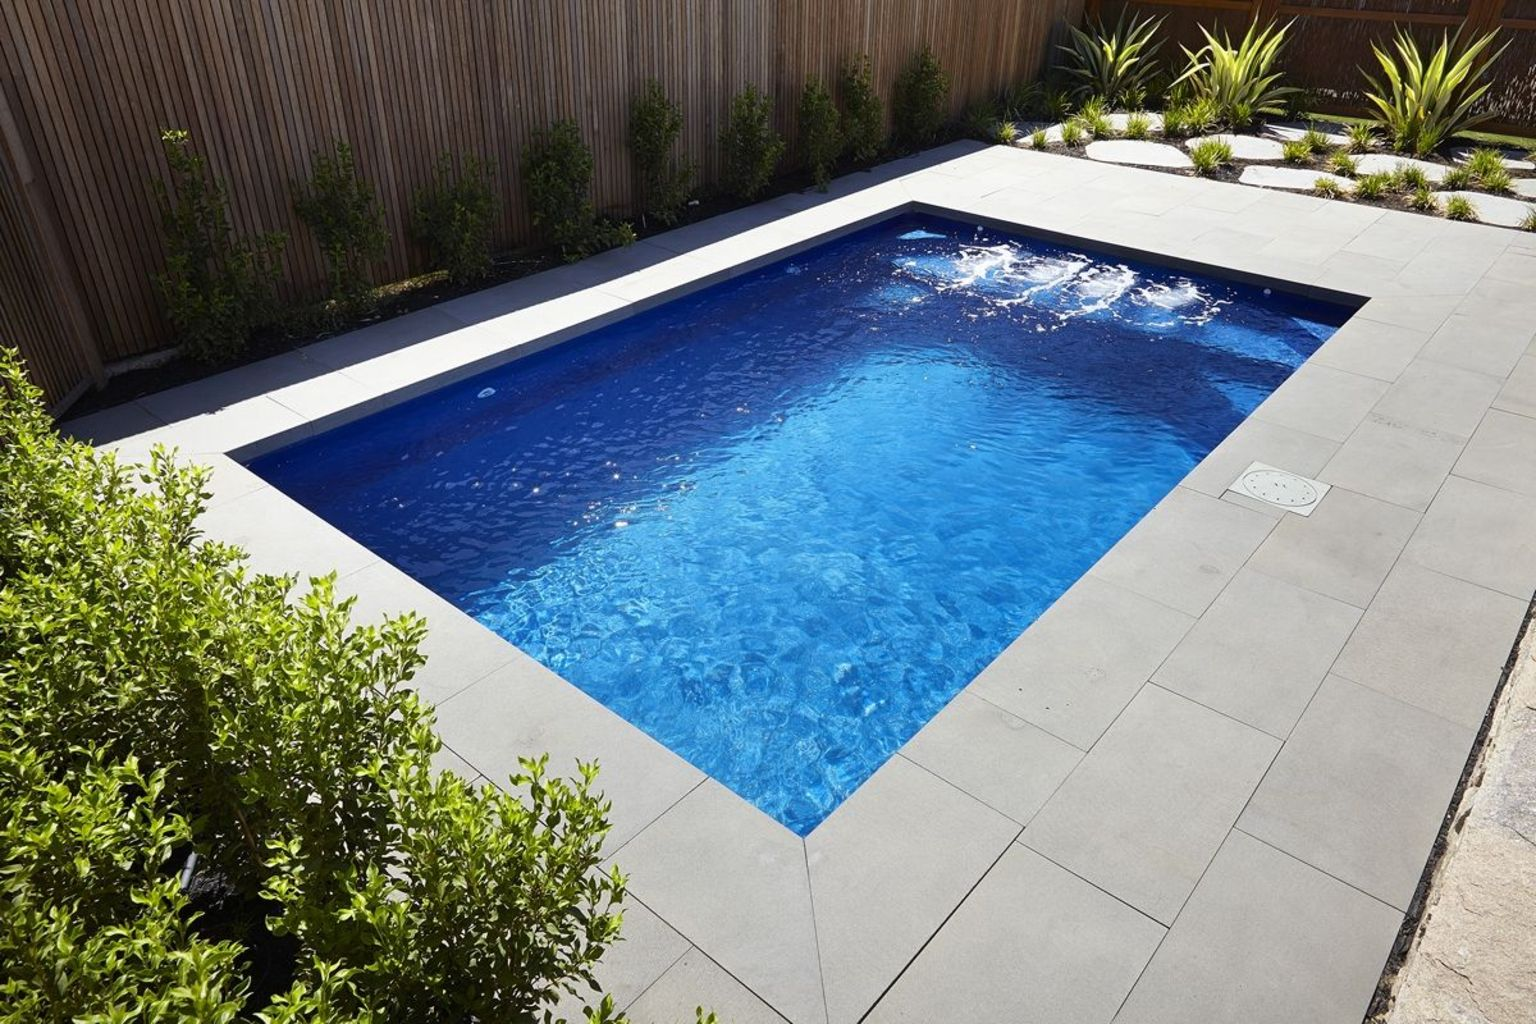 Small swimming pools made for small spaces and tight budgets Part 28